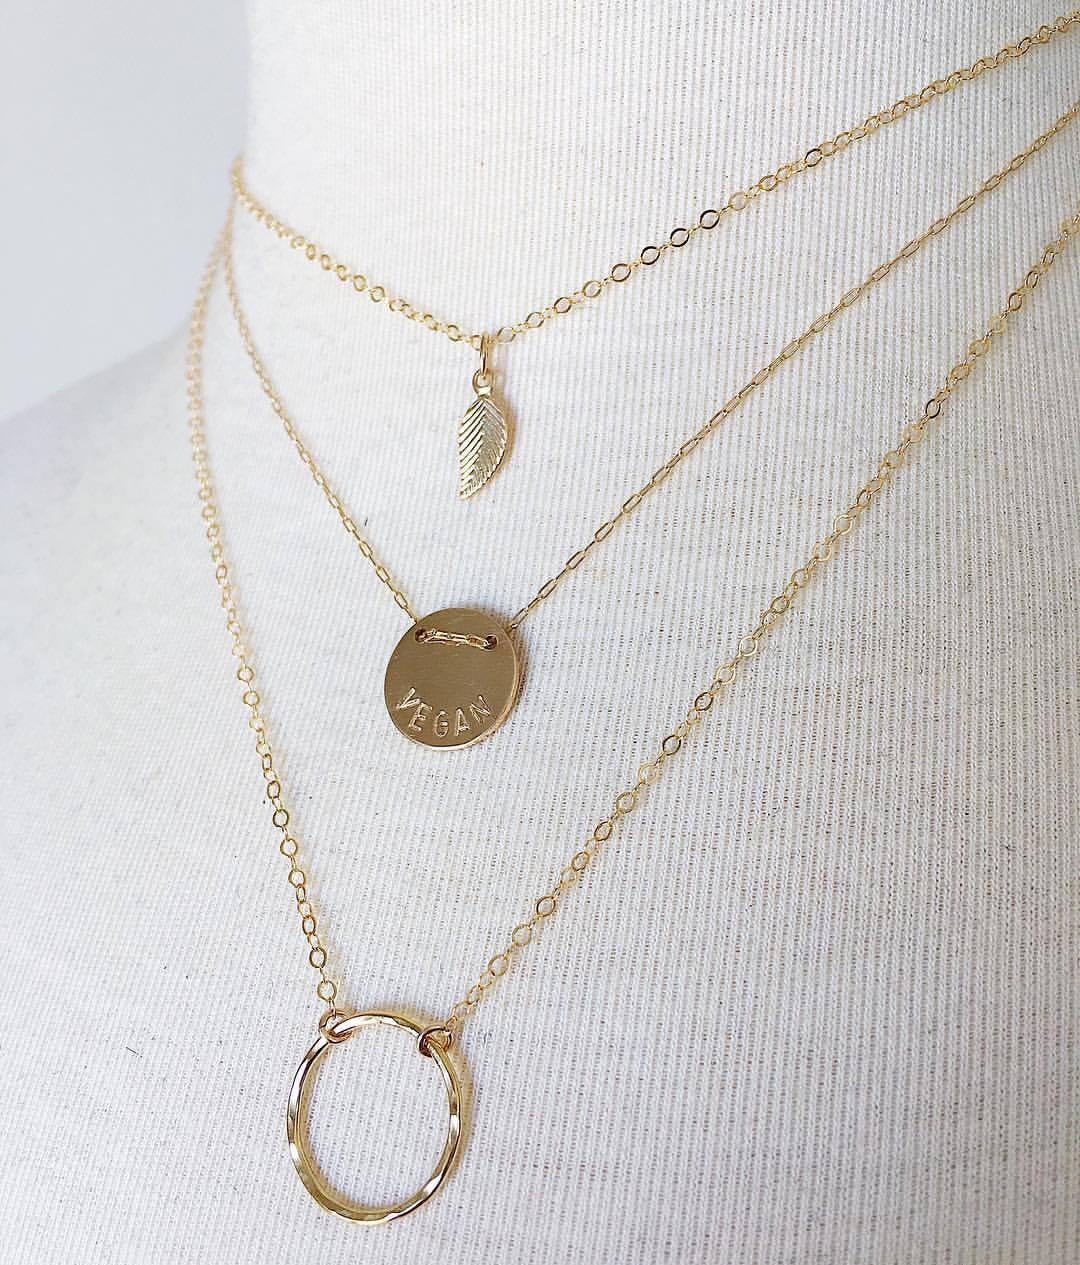 Compassion Layers in gold featuring the Earth Saver necklace with gold fill components + the 'VEGAN' Button Necklace in Gold + Gold Drop Circle Necklace by  Jewels by SJB .